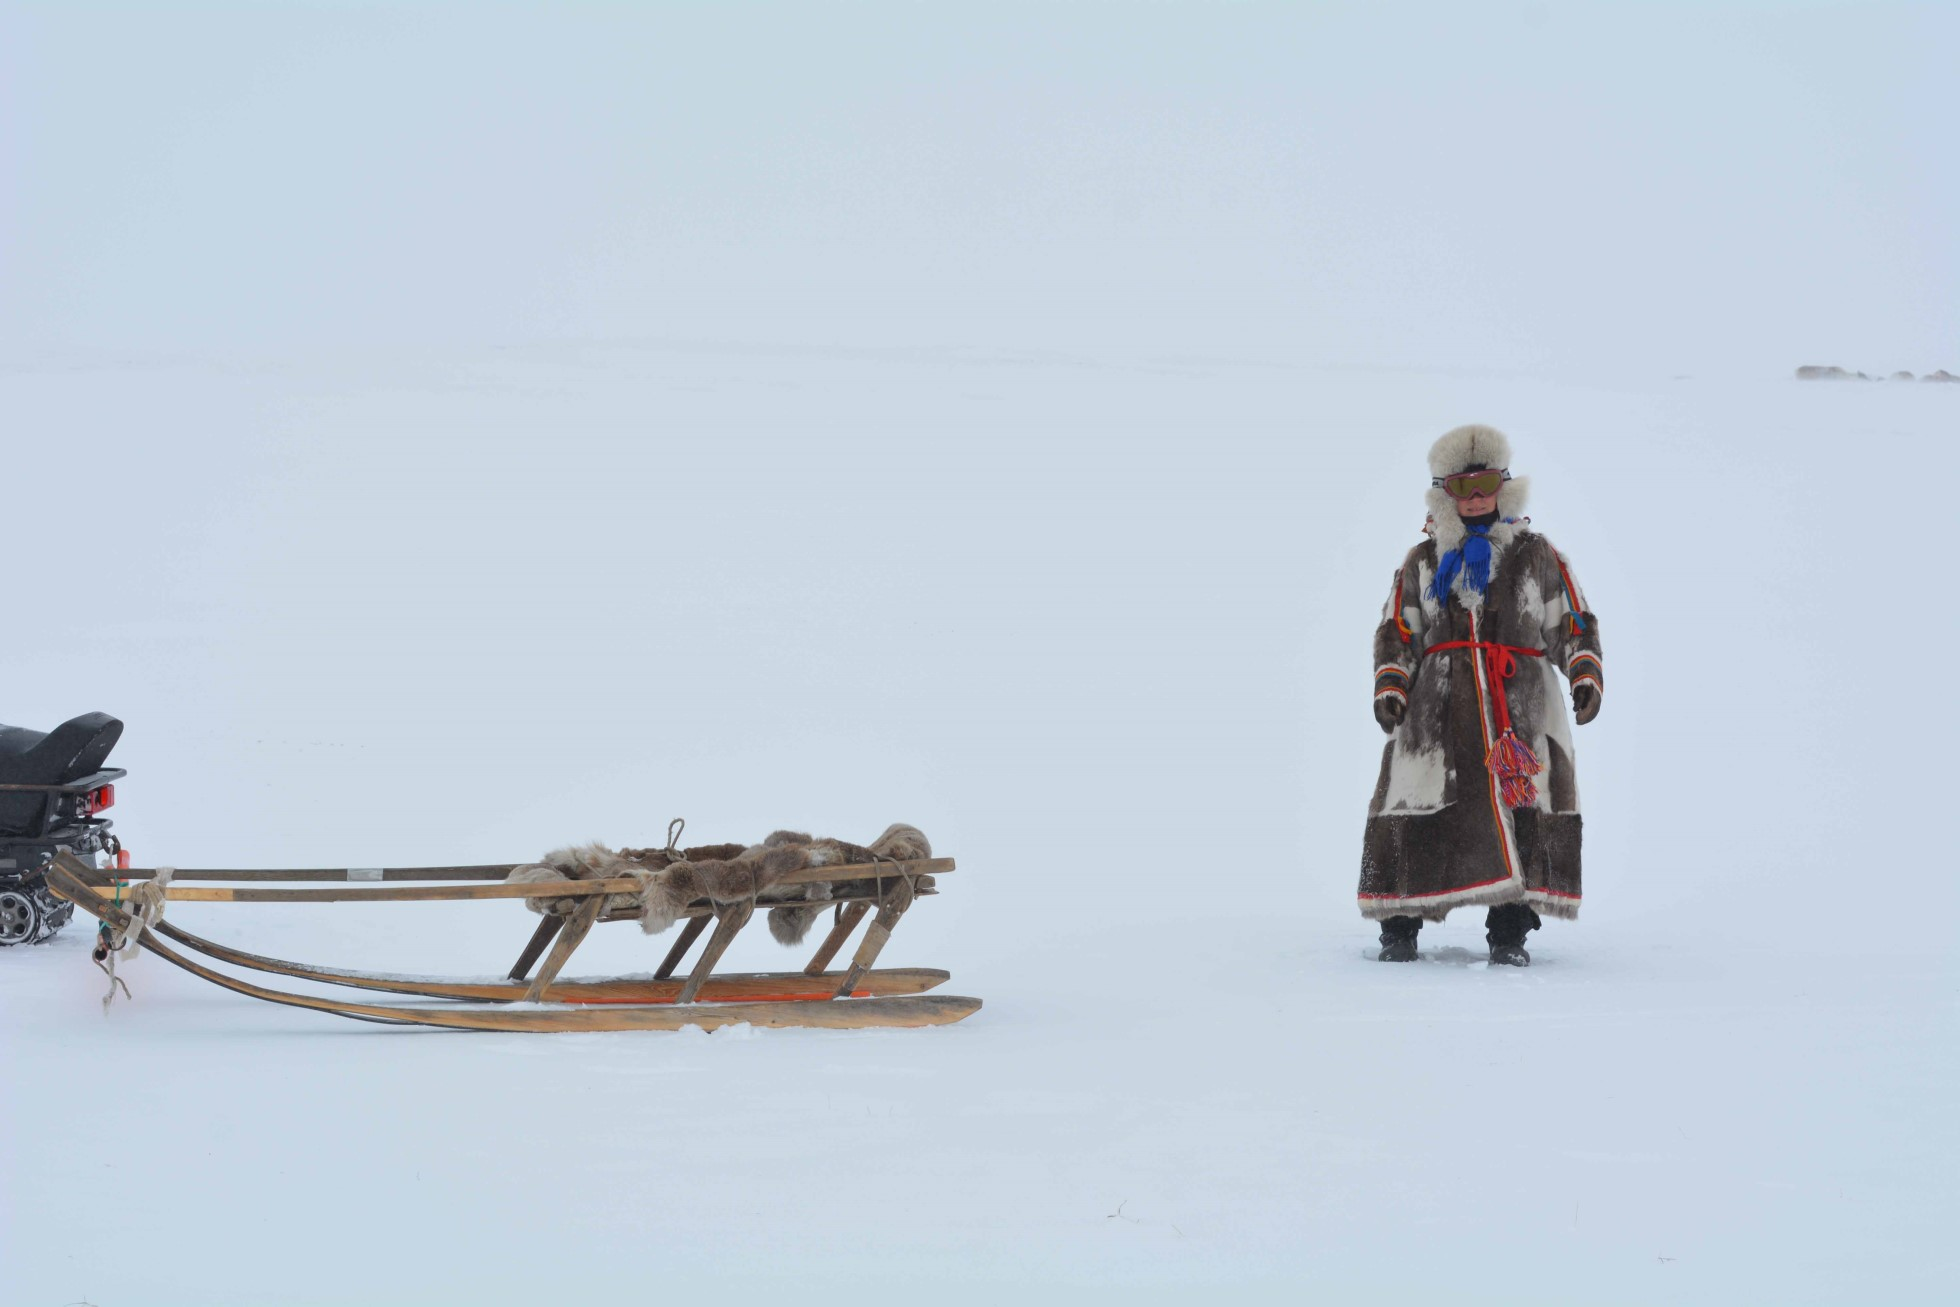 A photograph of a woman standing in the snow wearing a long fur parka and hat. The parka is brown with white decorations and a red belt. On the left is a wooden sled.